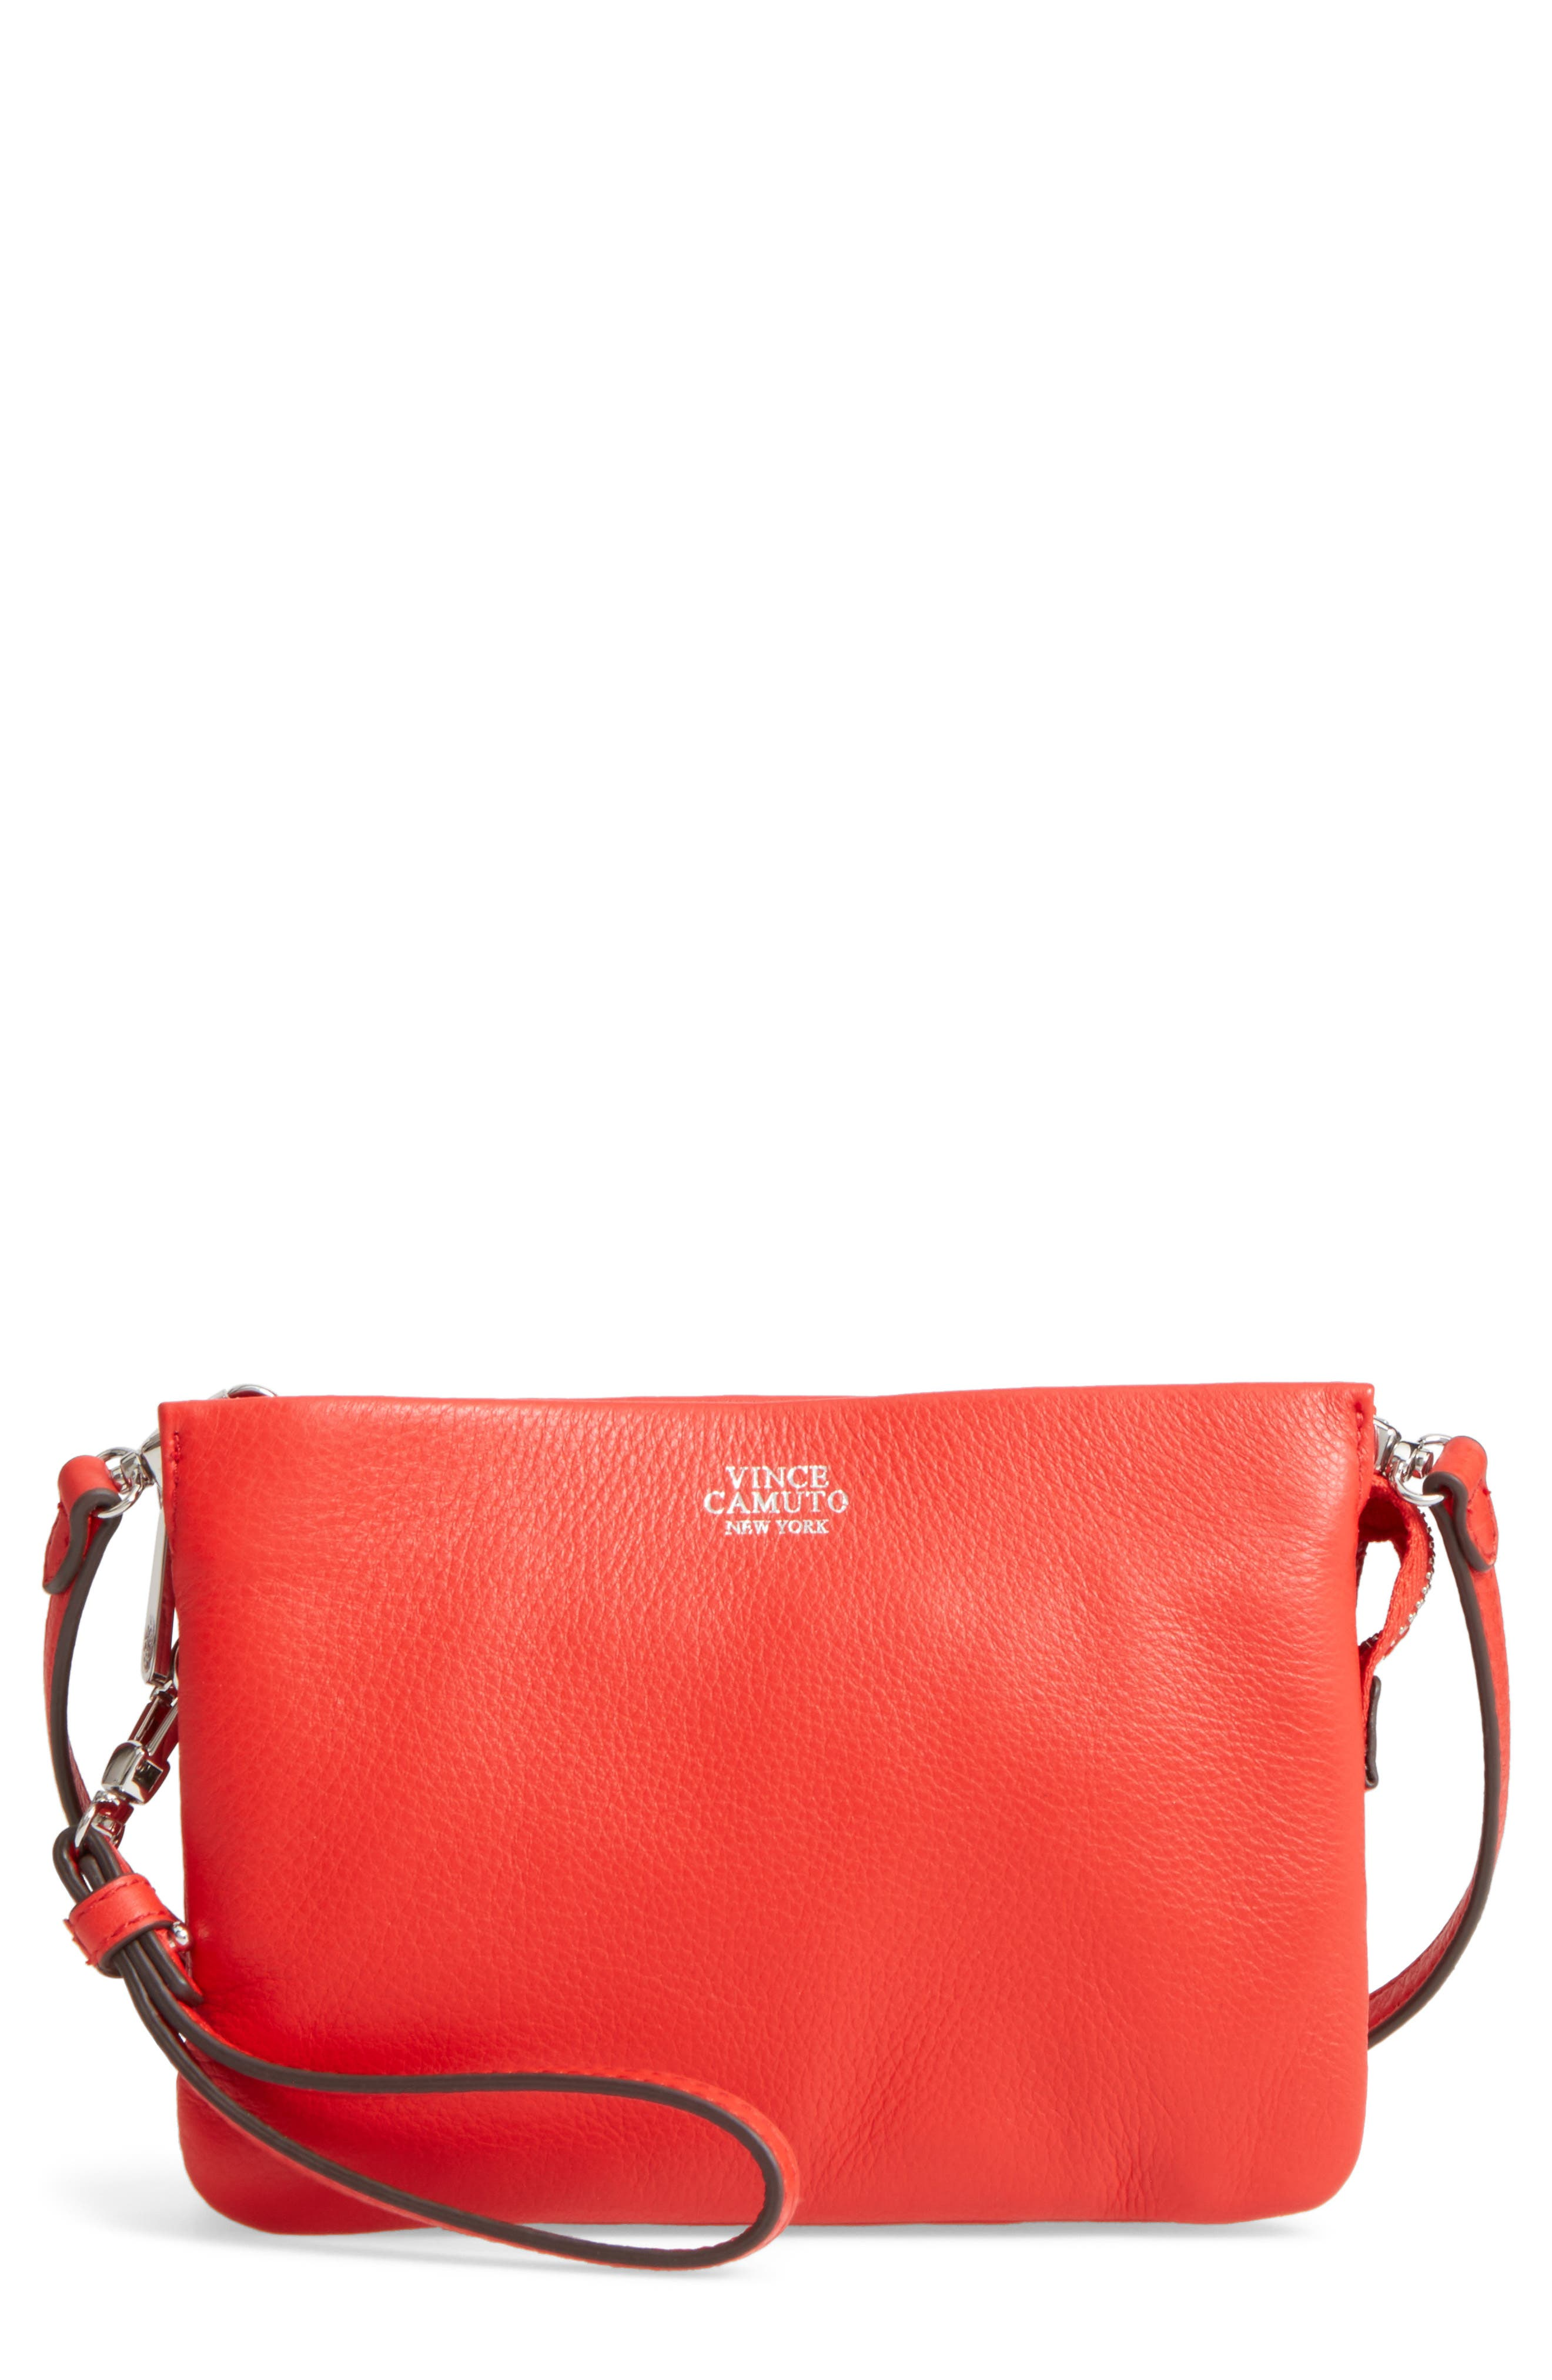 Vince Camuto 'Cami' Leather Crossbody Bag